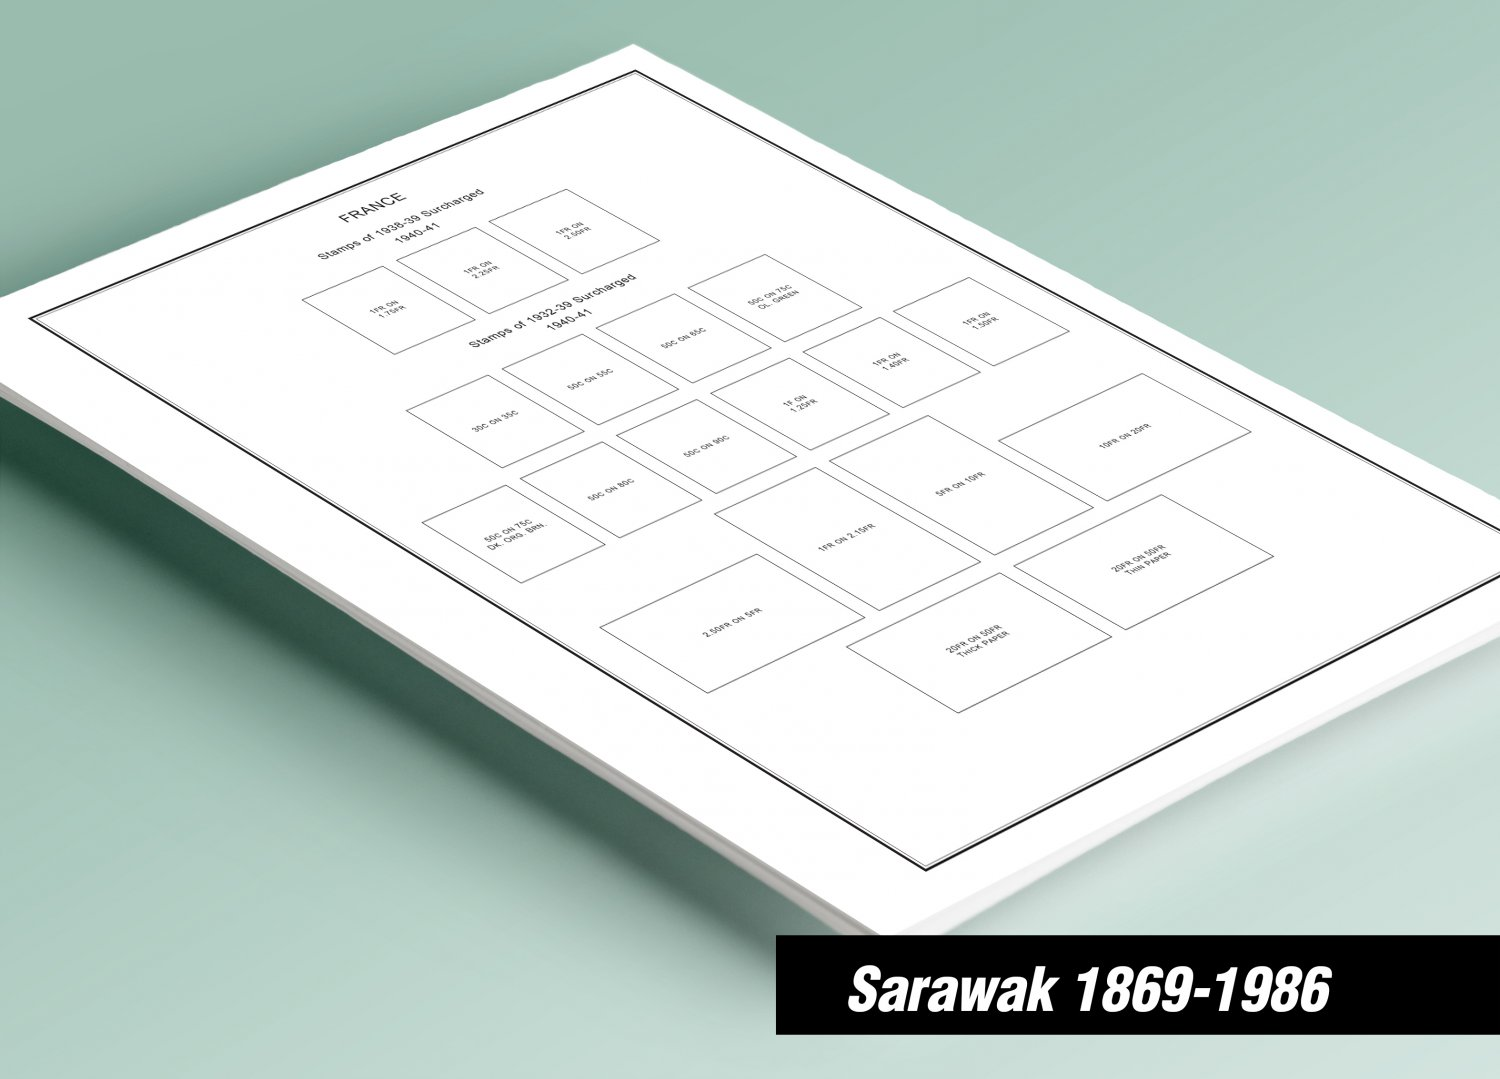 PRINTED SARAWAK 1869-1986 STAMP ALBUM PAGES (16 pages)